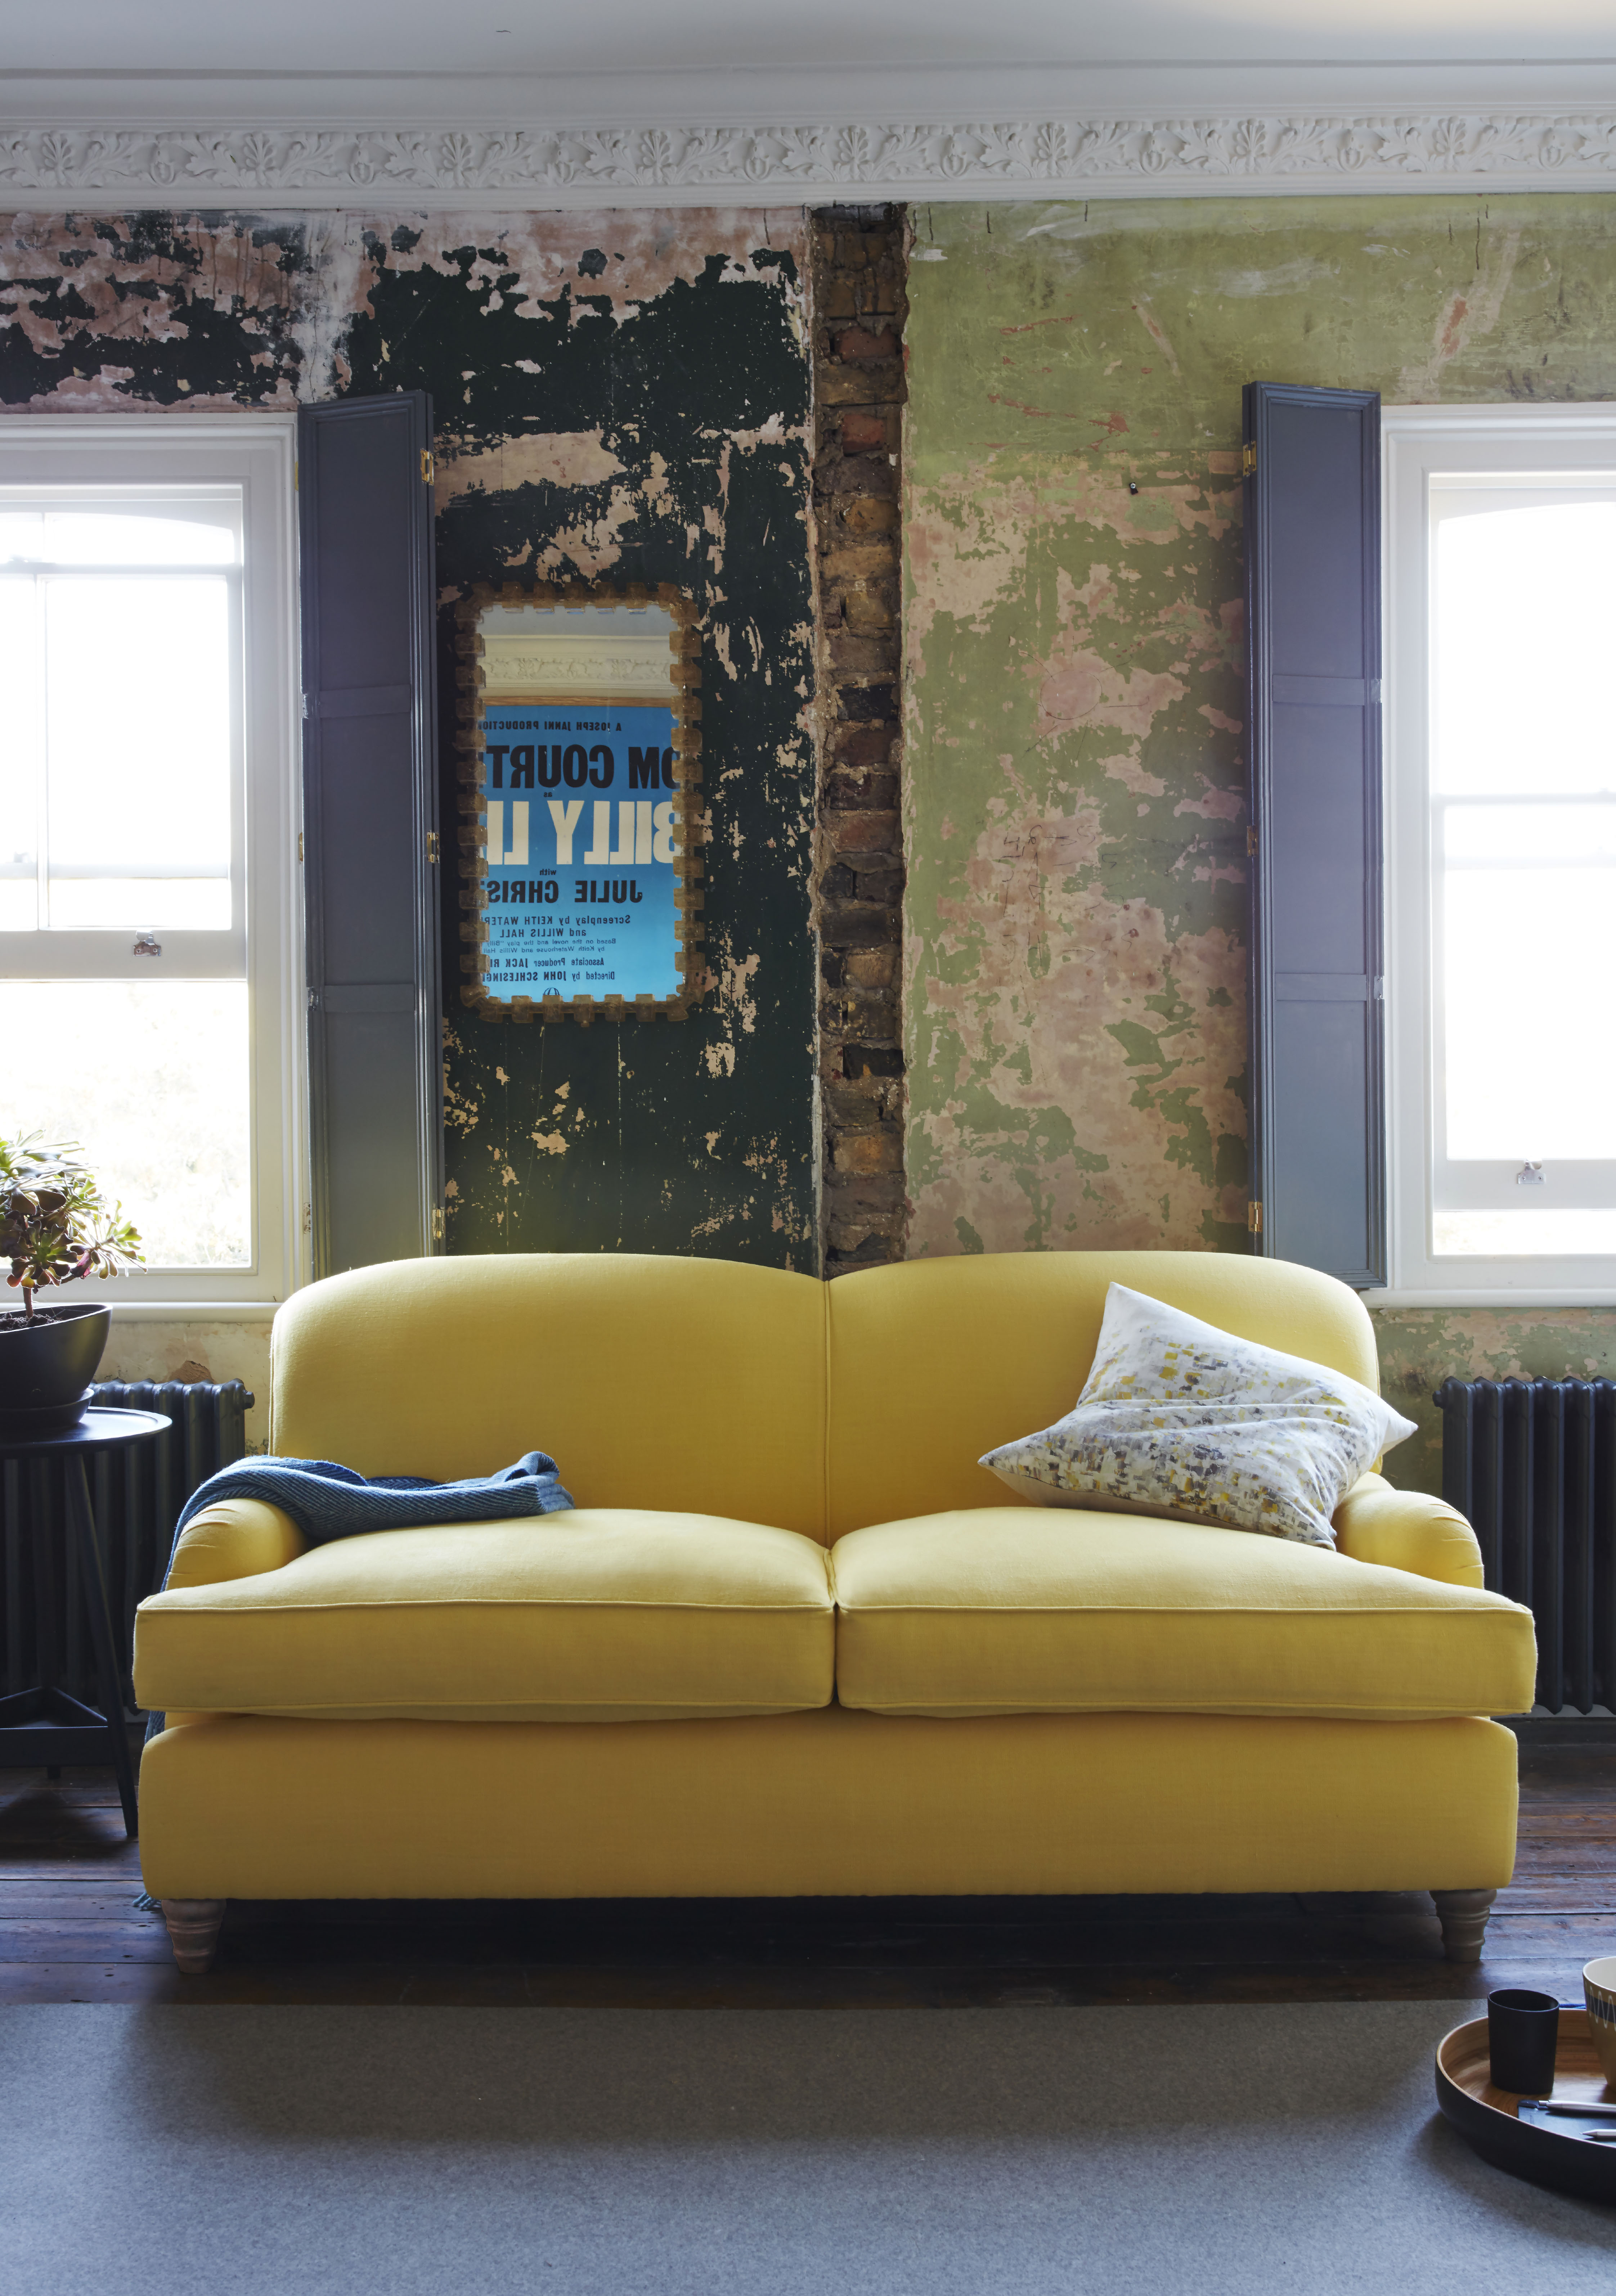 today I want to so you the latest looks that your walls will love - distressed plaster walls. Move over exposed brick walls - now interior lovers are getting light headed over the authentic patina found in plasterwork.